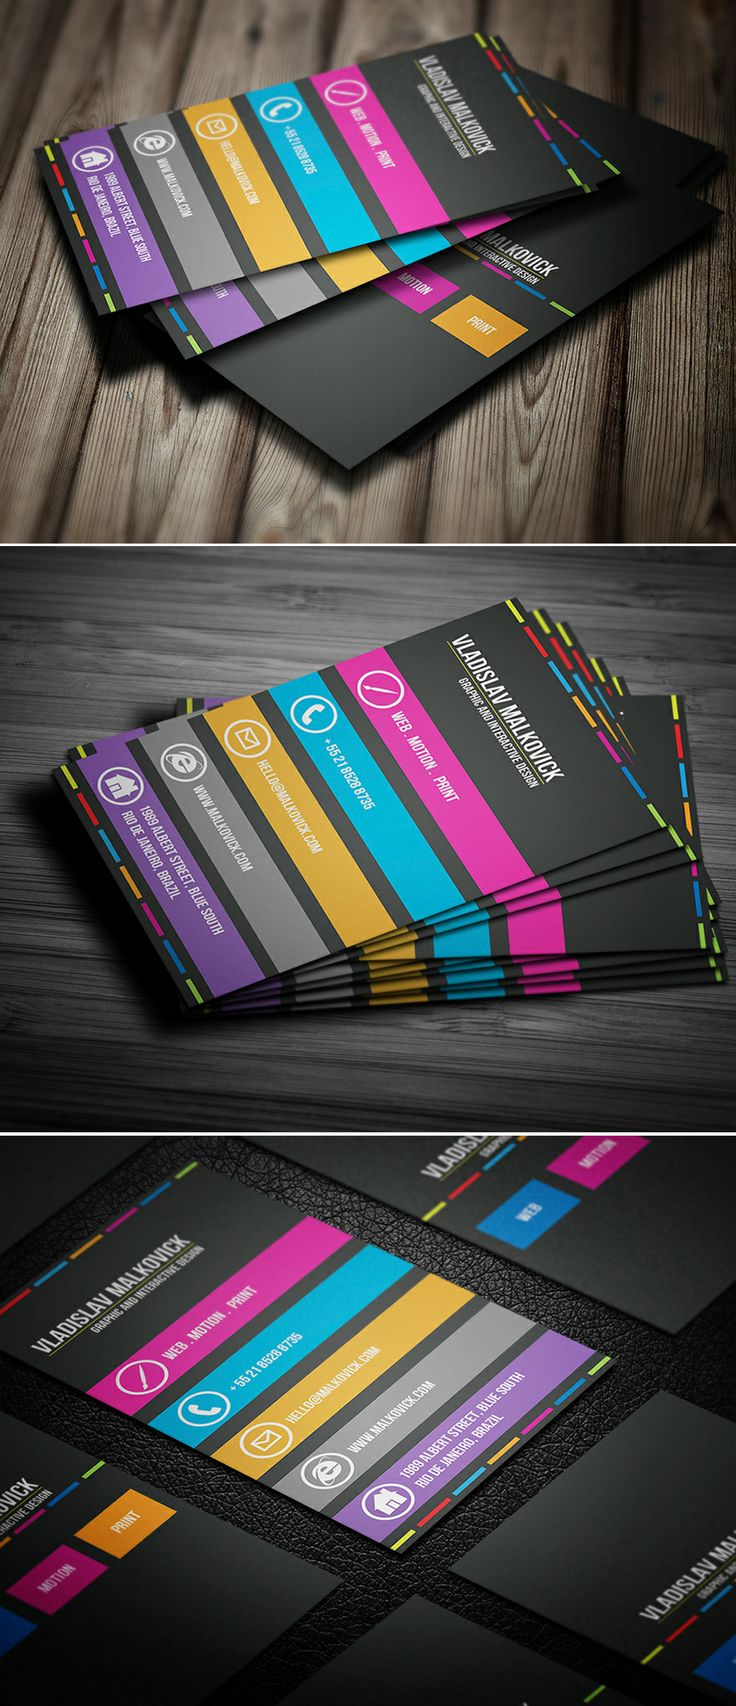 25 best Visiting Card images on Pinterest | Business cards, Cards ...